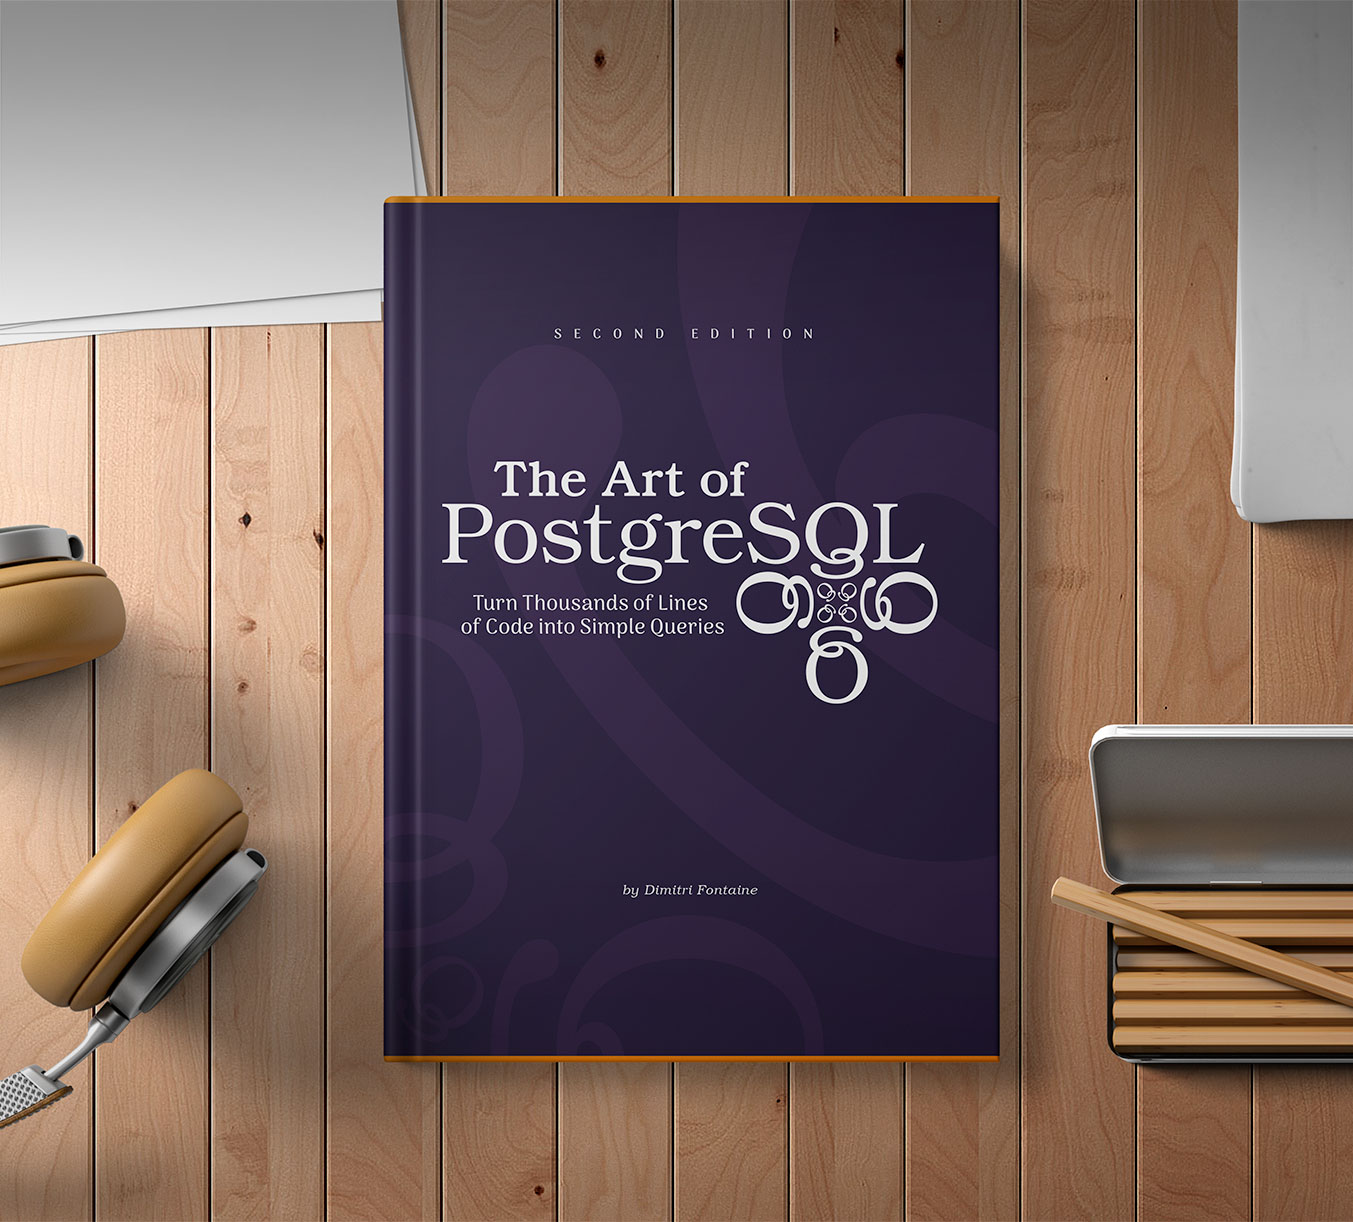 The Art of PostgreSQL is out!